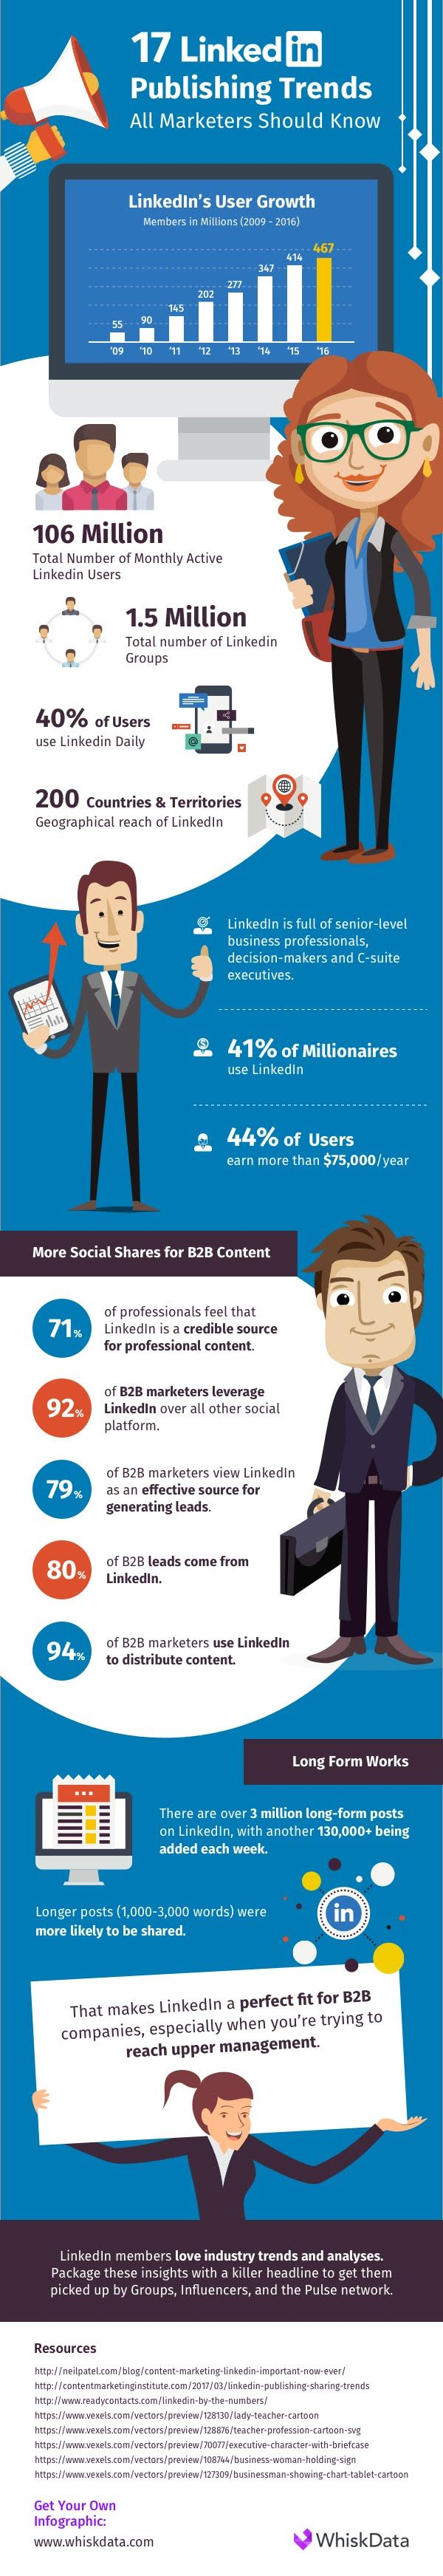 17 LinkedIn Publishing Trends All Marketers Should Know - #Infographic